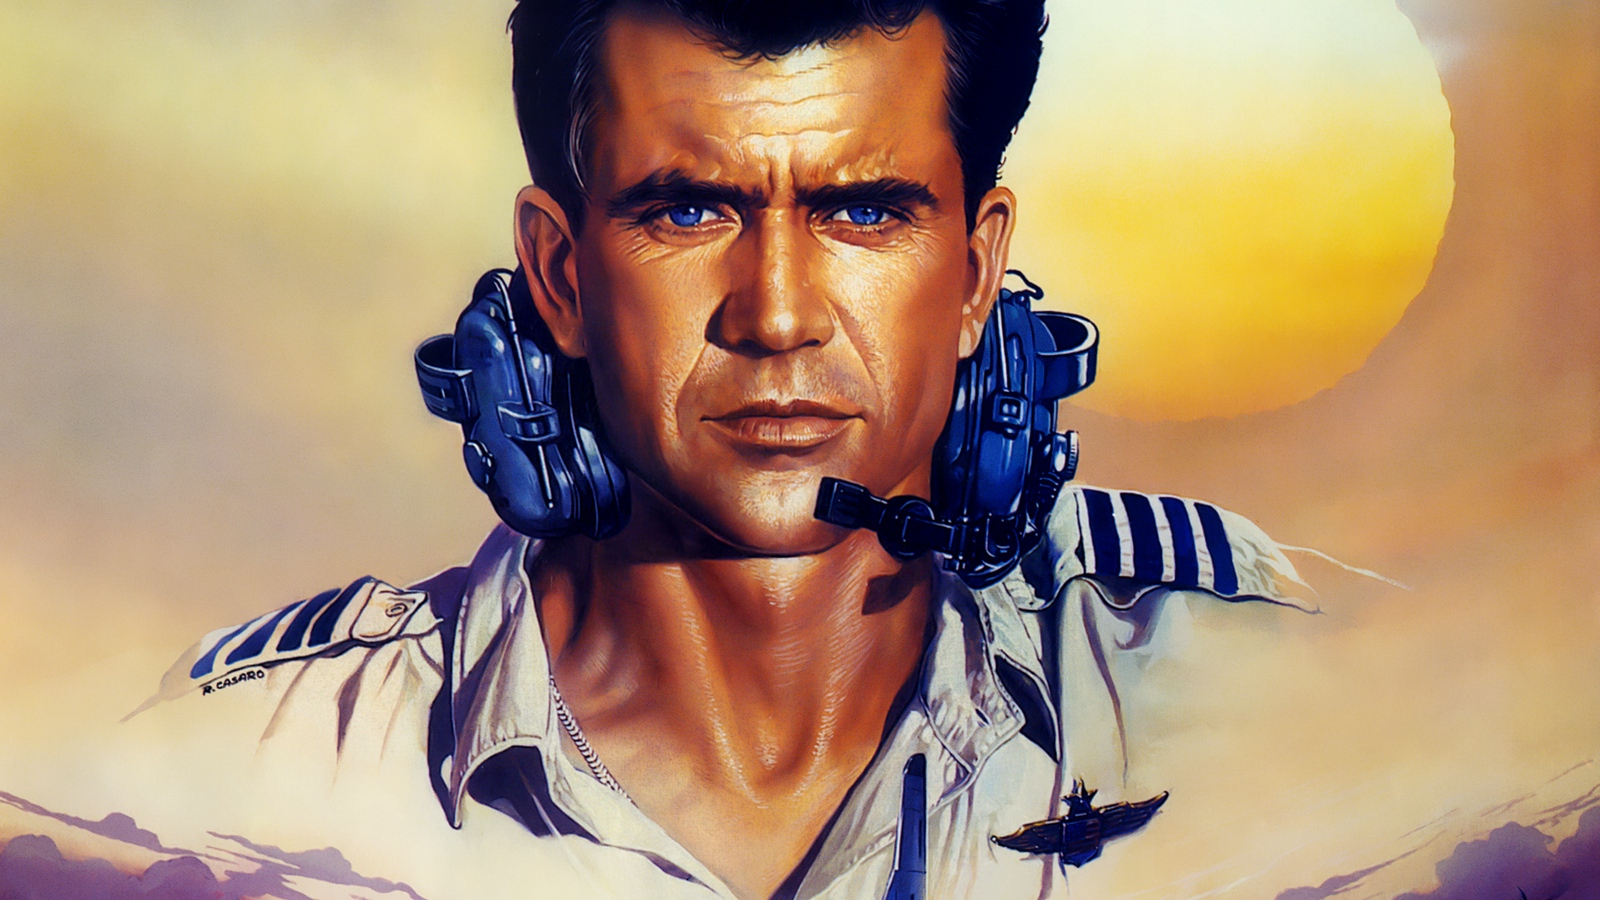 Download wallpaper 1600x900 air america mel gibson gene 1600x900